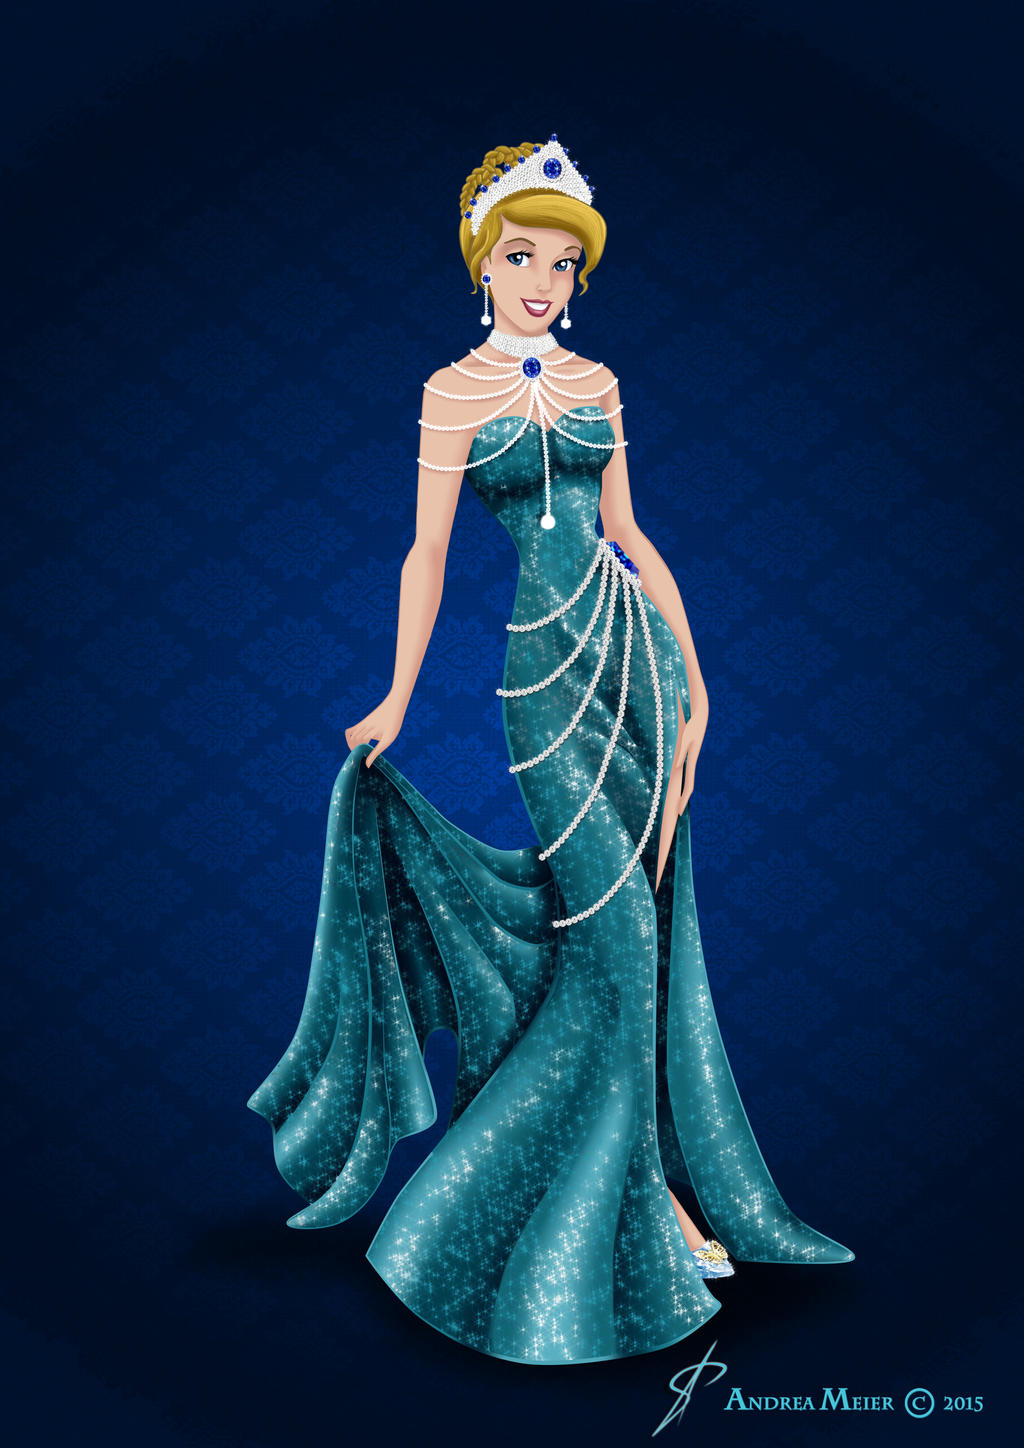 Royal jewels dress edition cinderella by missmikopete on deviantart royal jewels dress edition cinderella by missmikopete altavistaventures Image collections